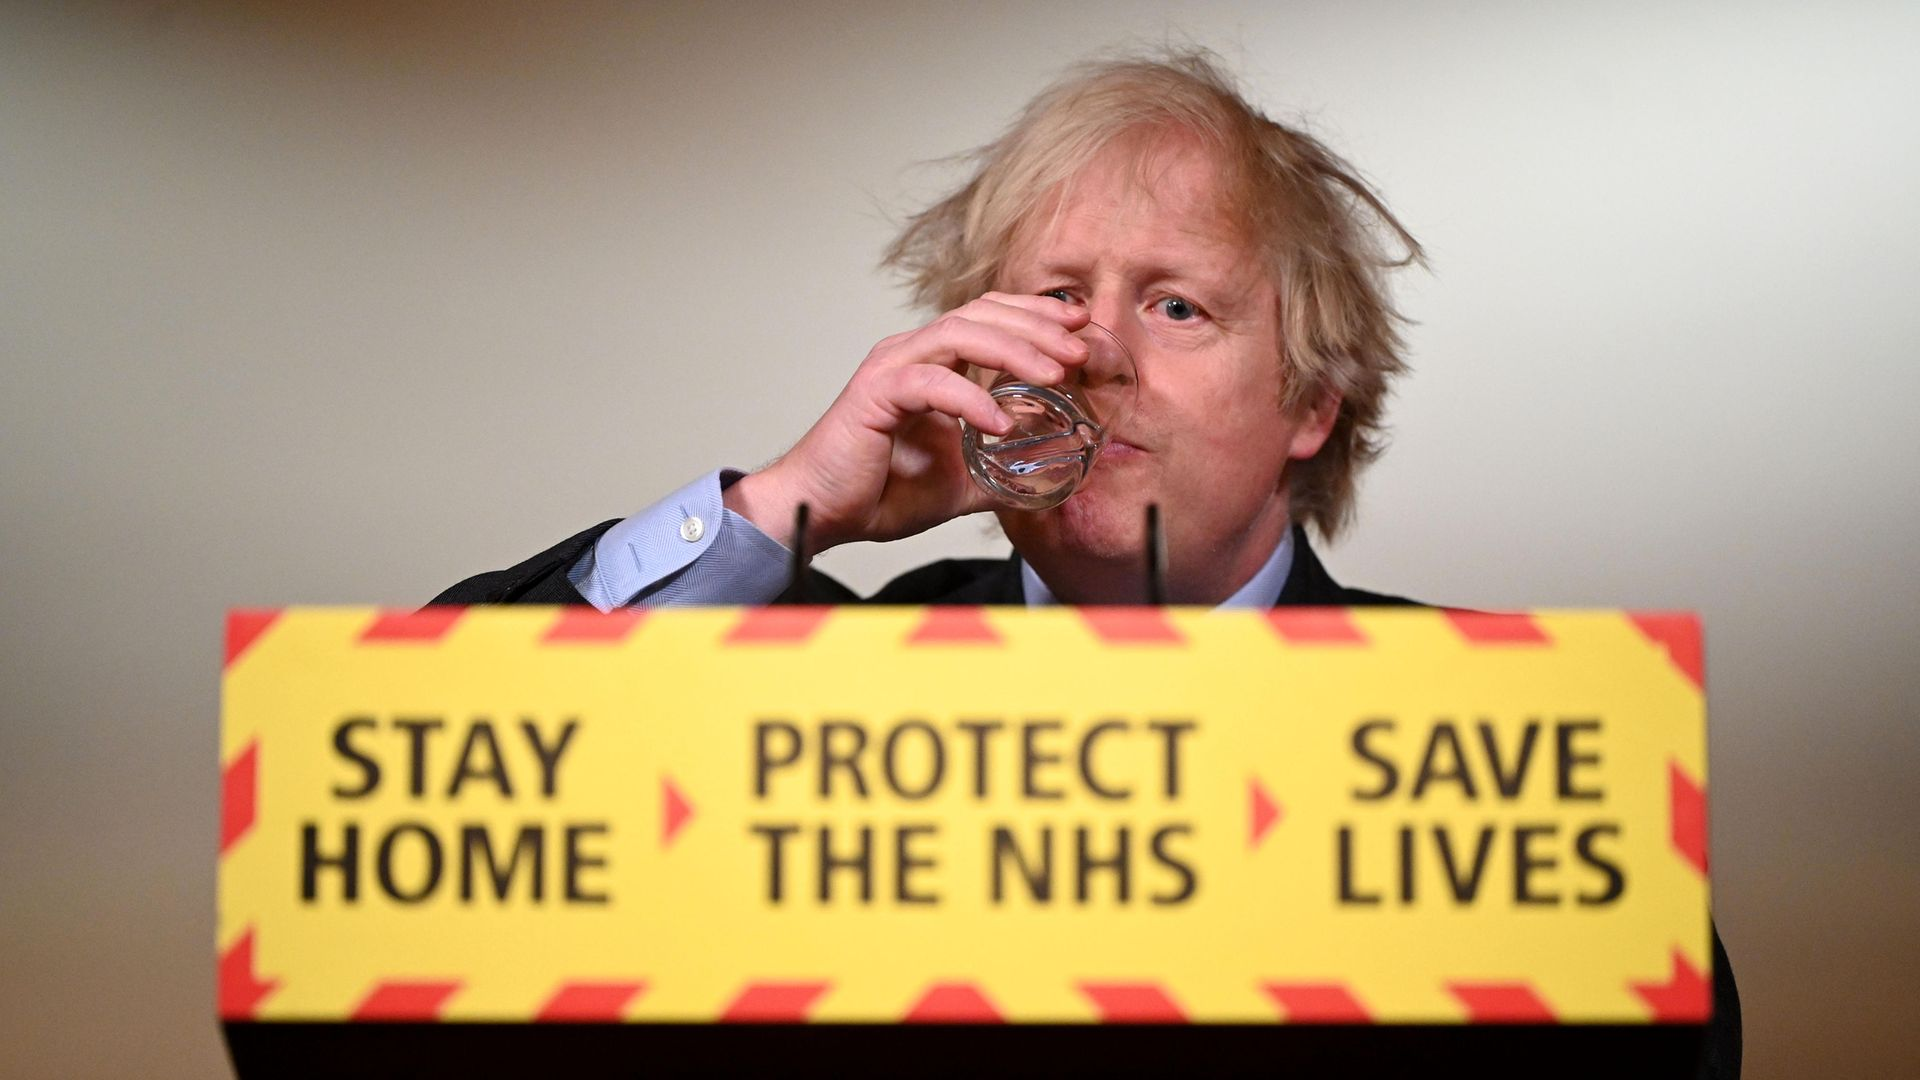 Prime Minister Boris Johnson takes questions from the media on his coronavirus strategy - Credit: PA